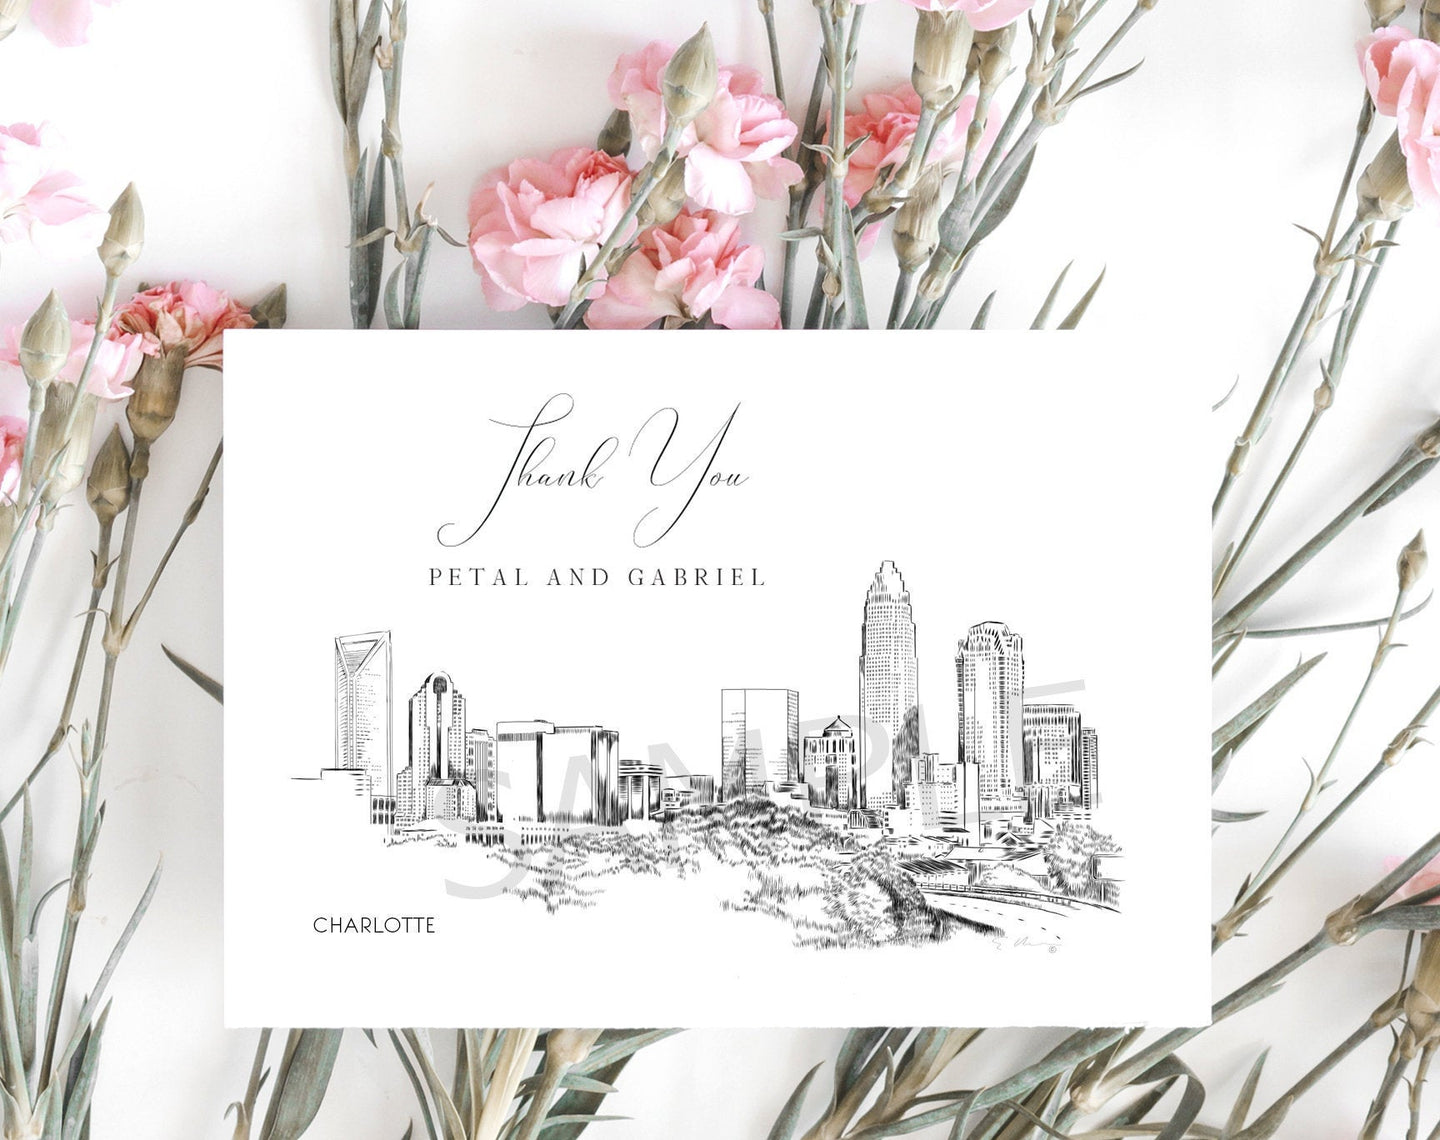 Charlotte, NC Skyline Thank You Cards, Personal Note Cards, Bridal Shower, Real Estate Agent, Corporate Thank you Cards (set of 25 cards)